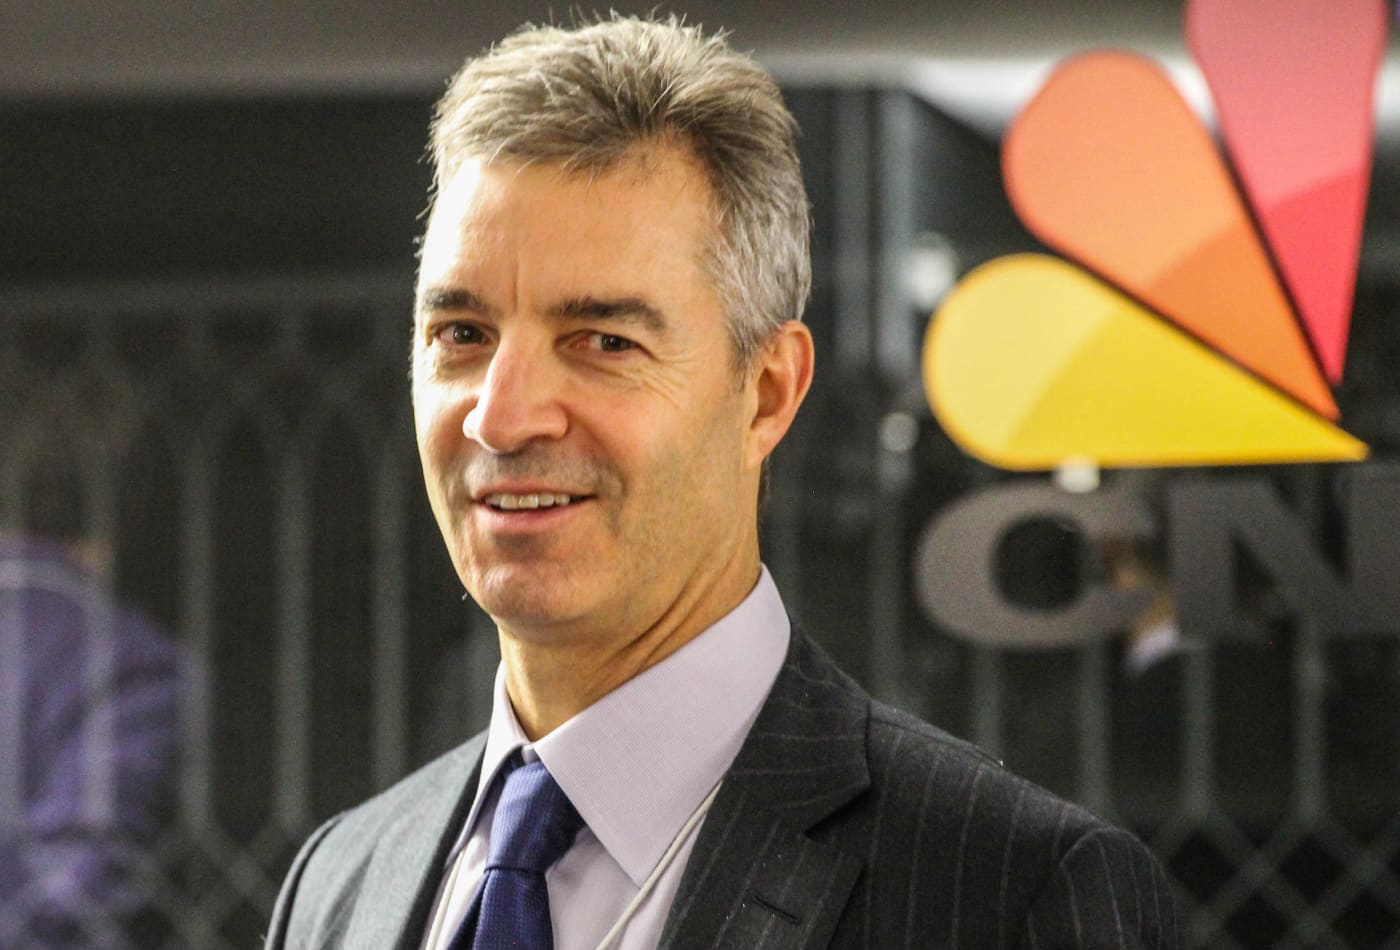 Third Point's Dan Loeb has big bets on newly public companies. Here are his top holdings